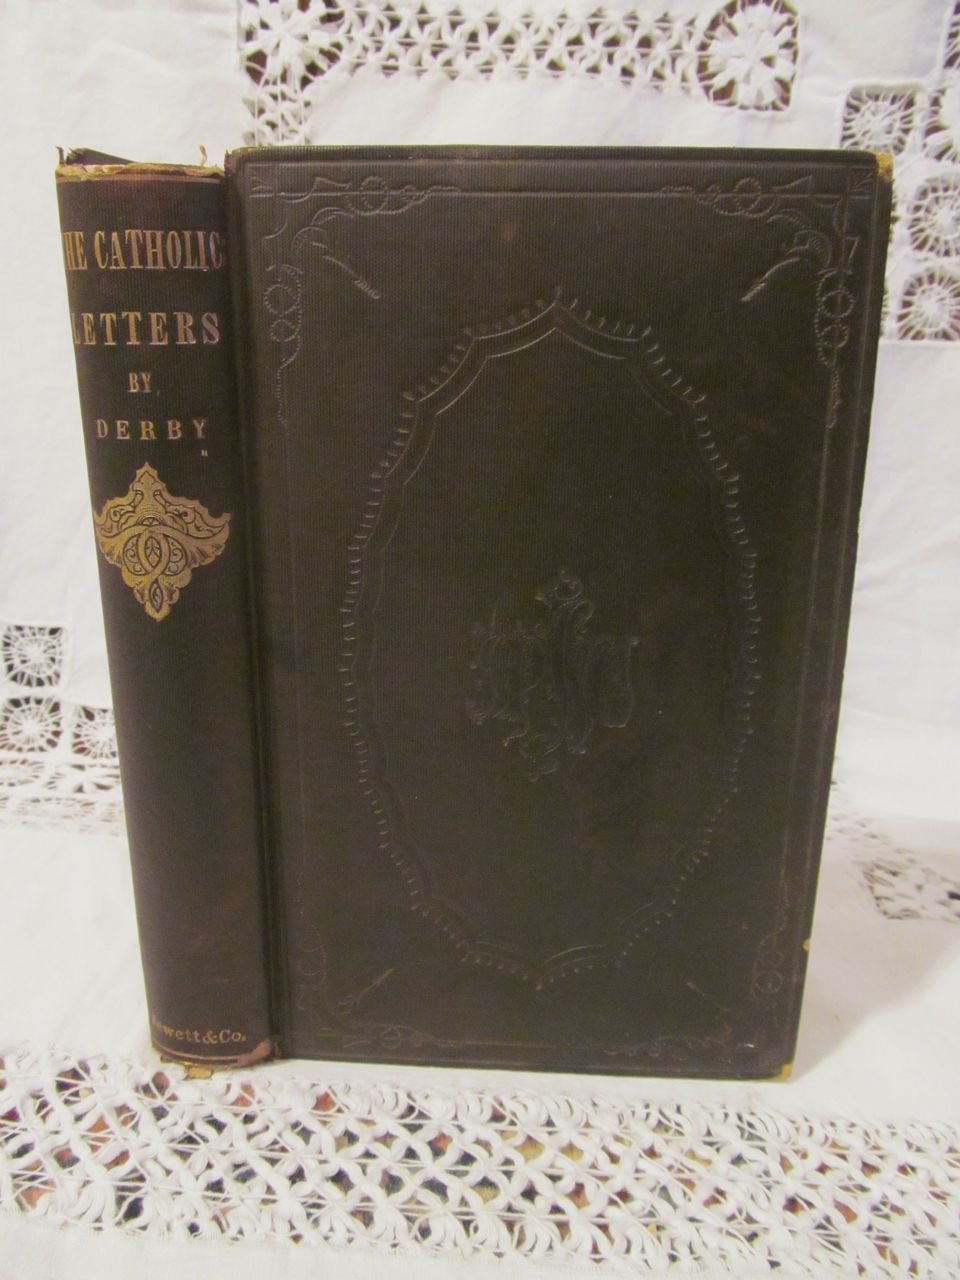 1856 The Catholic Letters by E H Derby, Publ by John P Jewett & Company